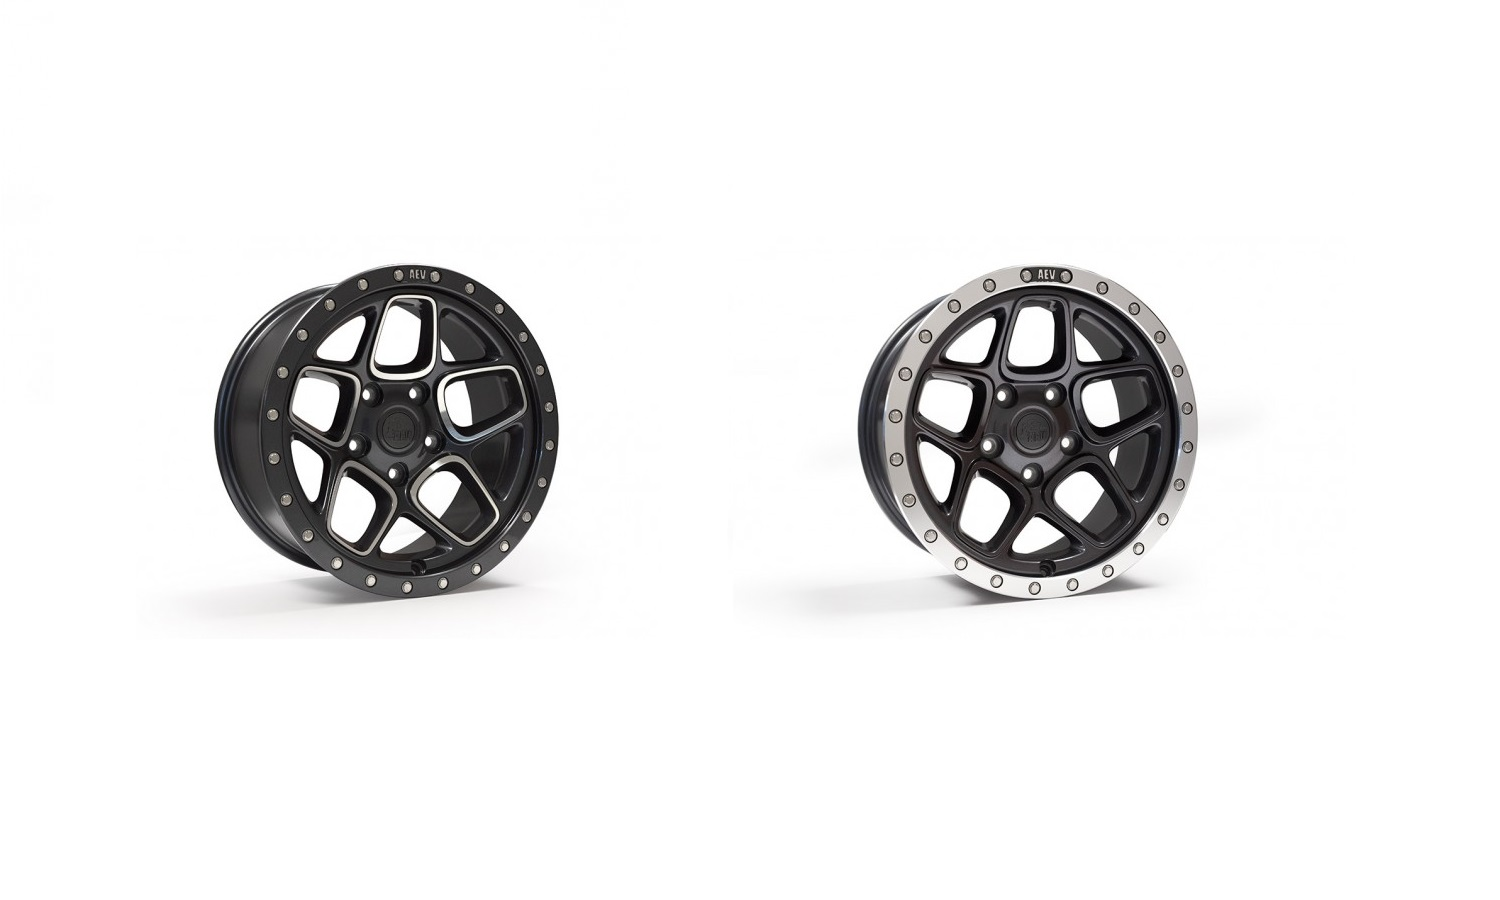 Aev Releases New Wheels And Trim Ring Accent For Jeeps And